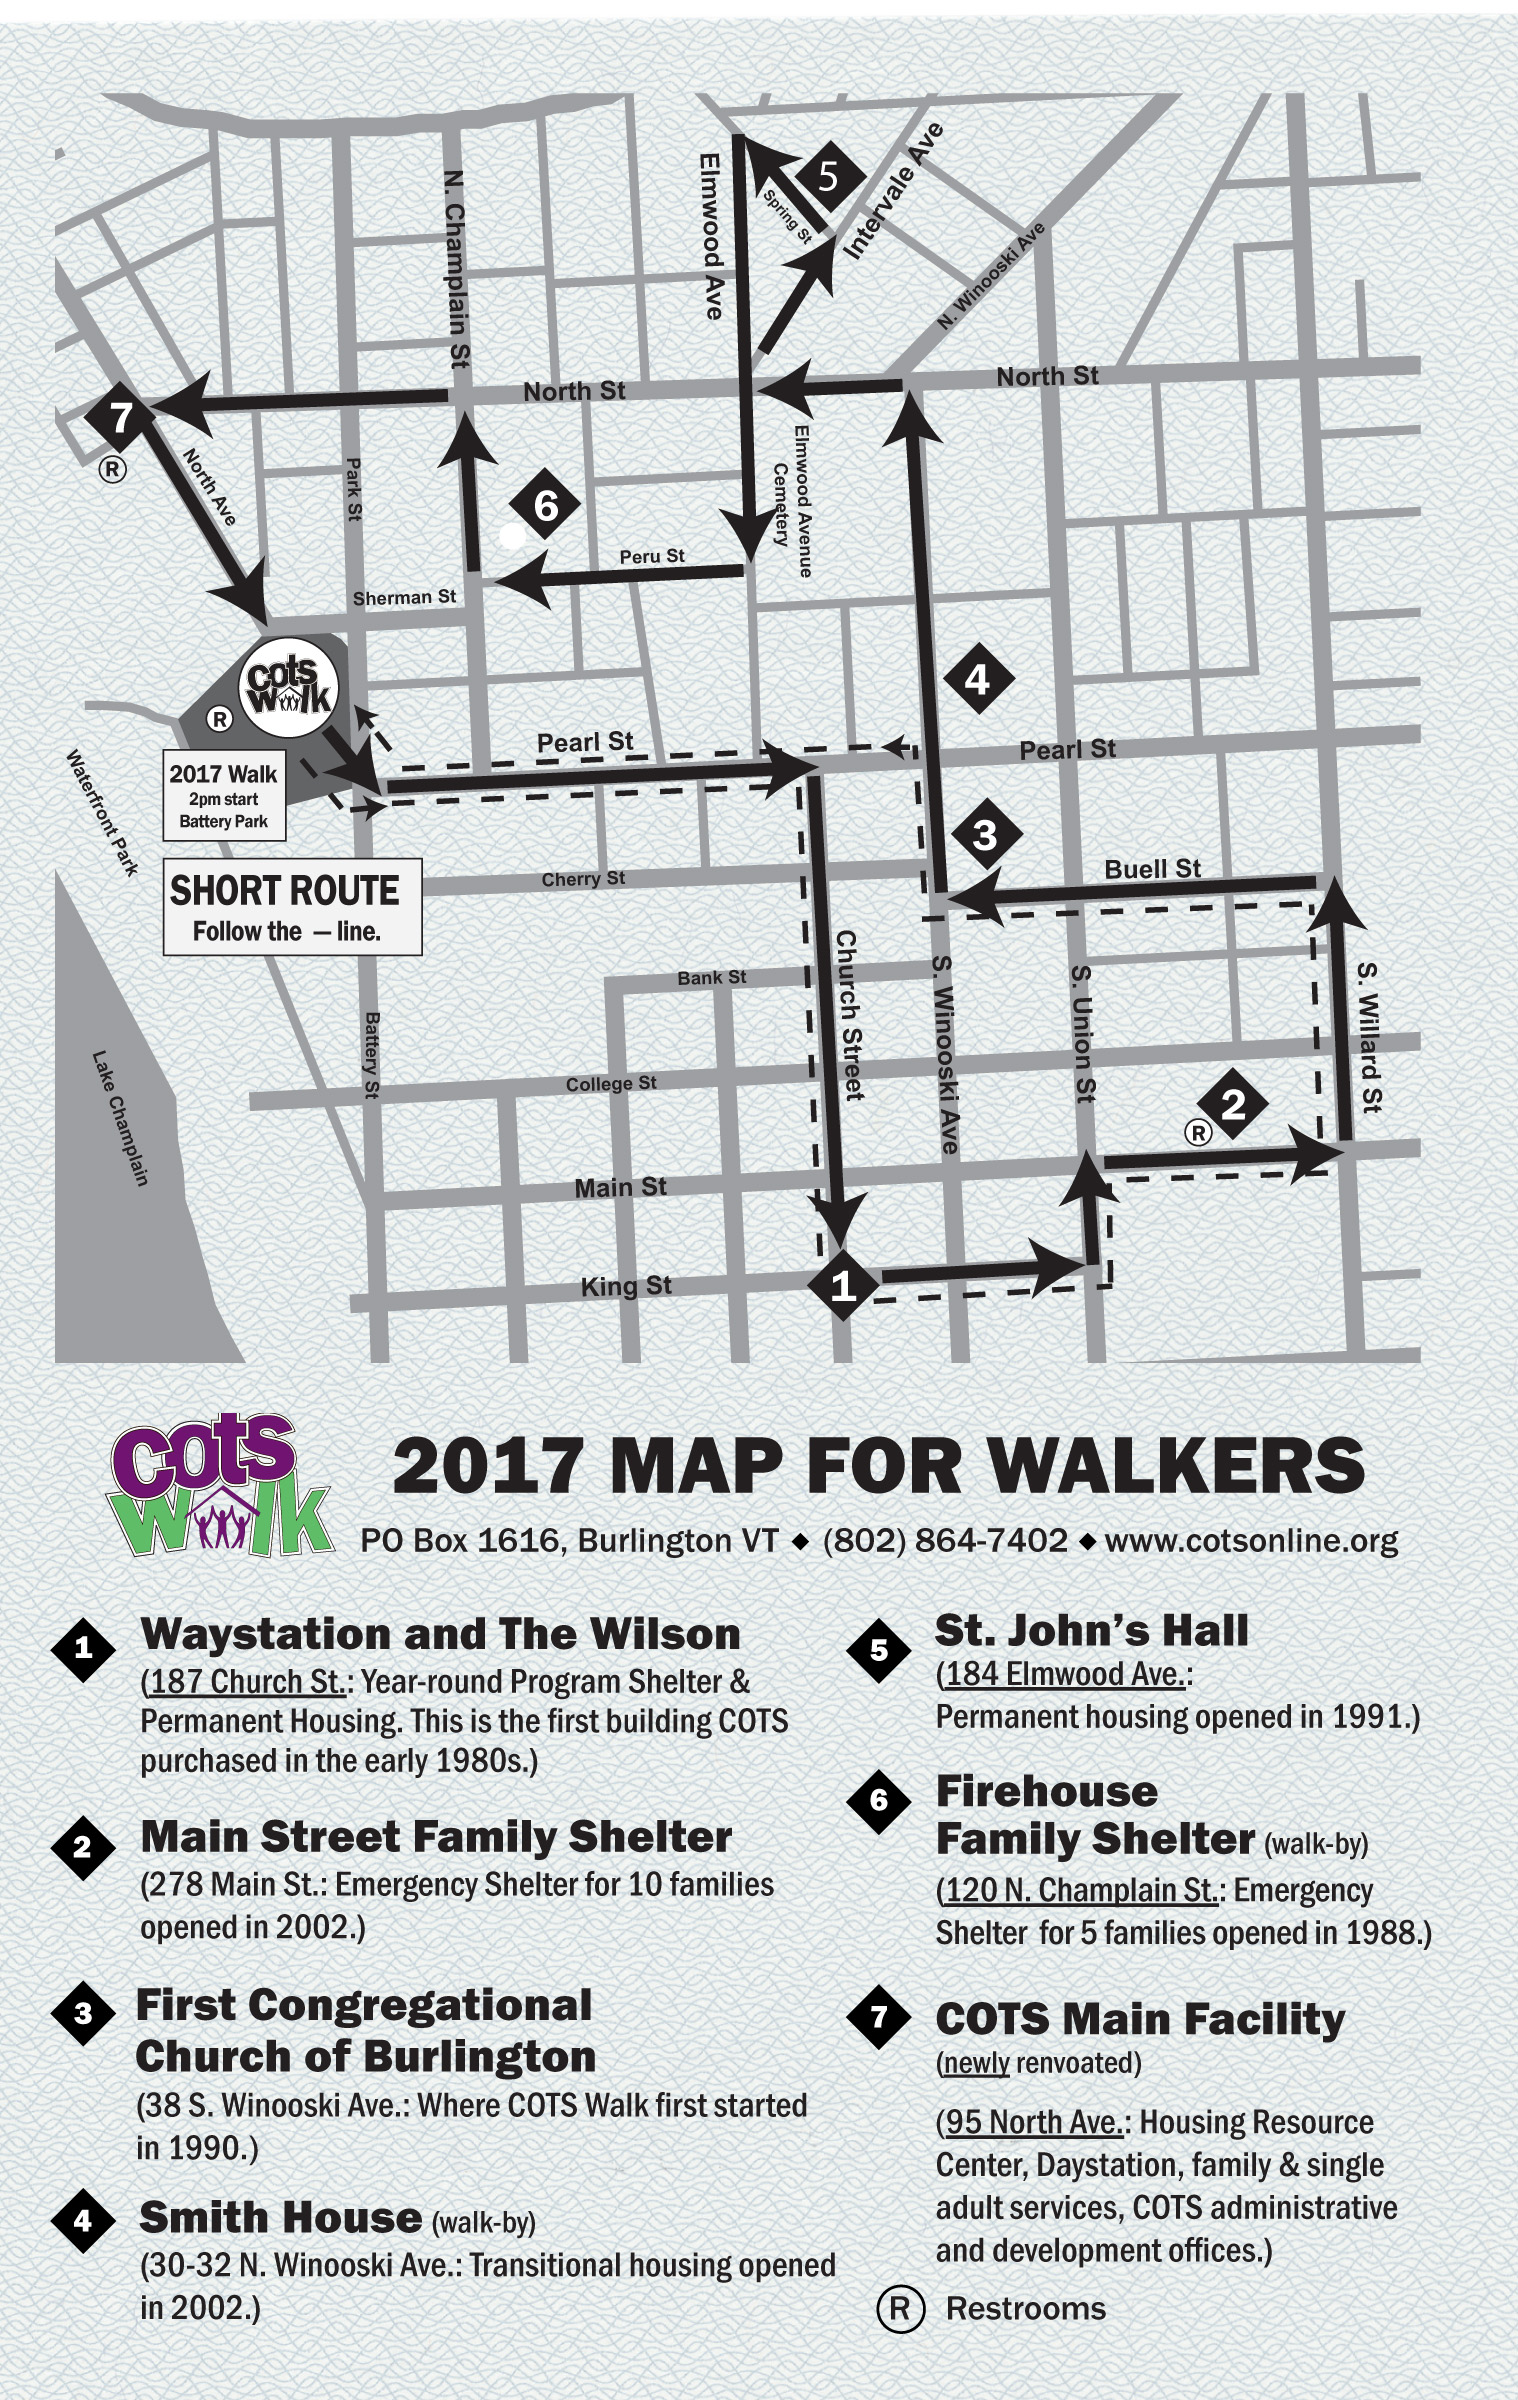 Cots Walk Everything You Need To Know Join Us Sunday Committee Zumba Steps Diagram Map